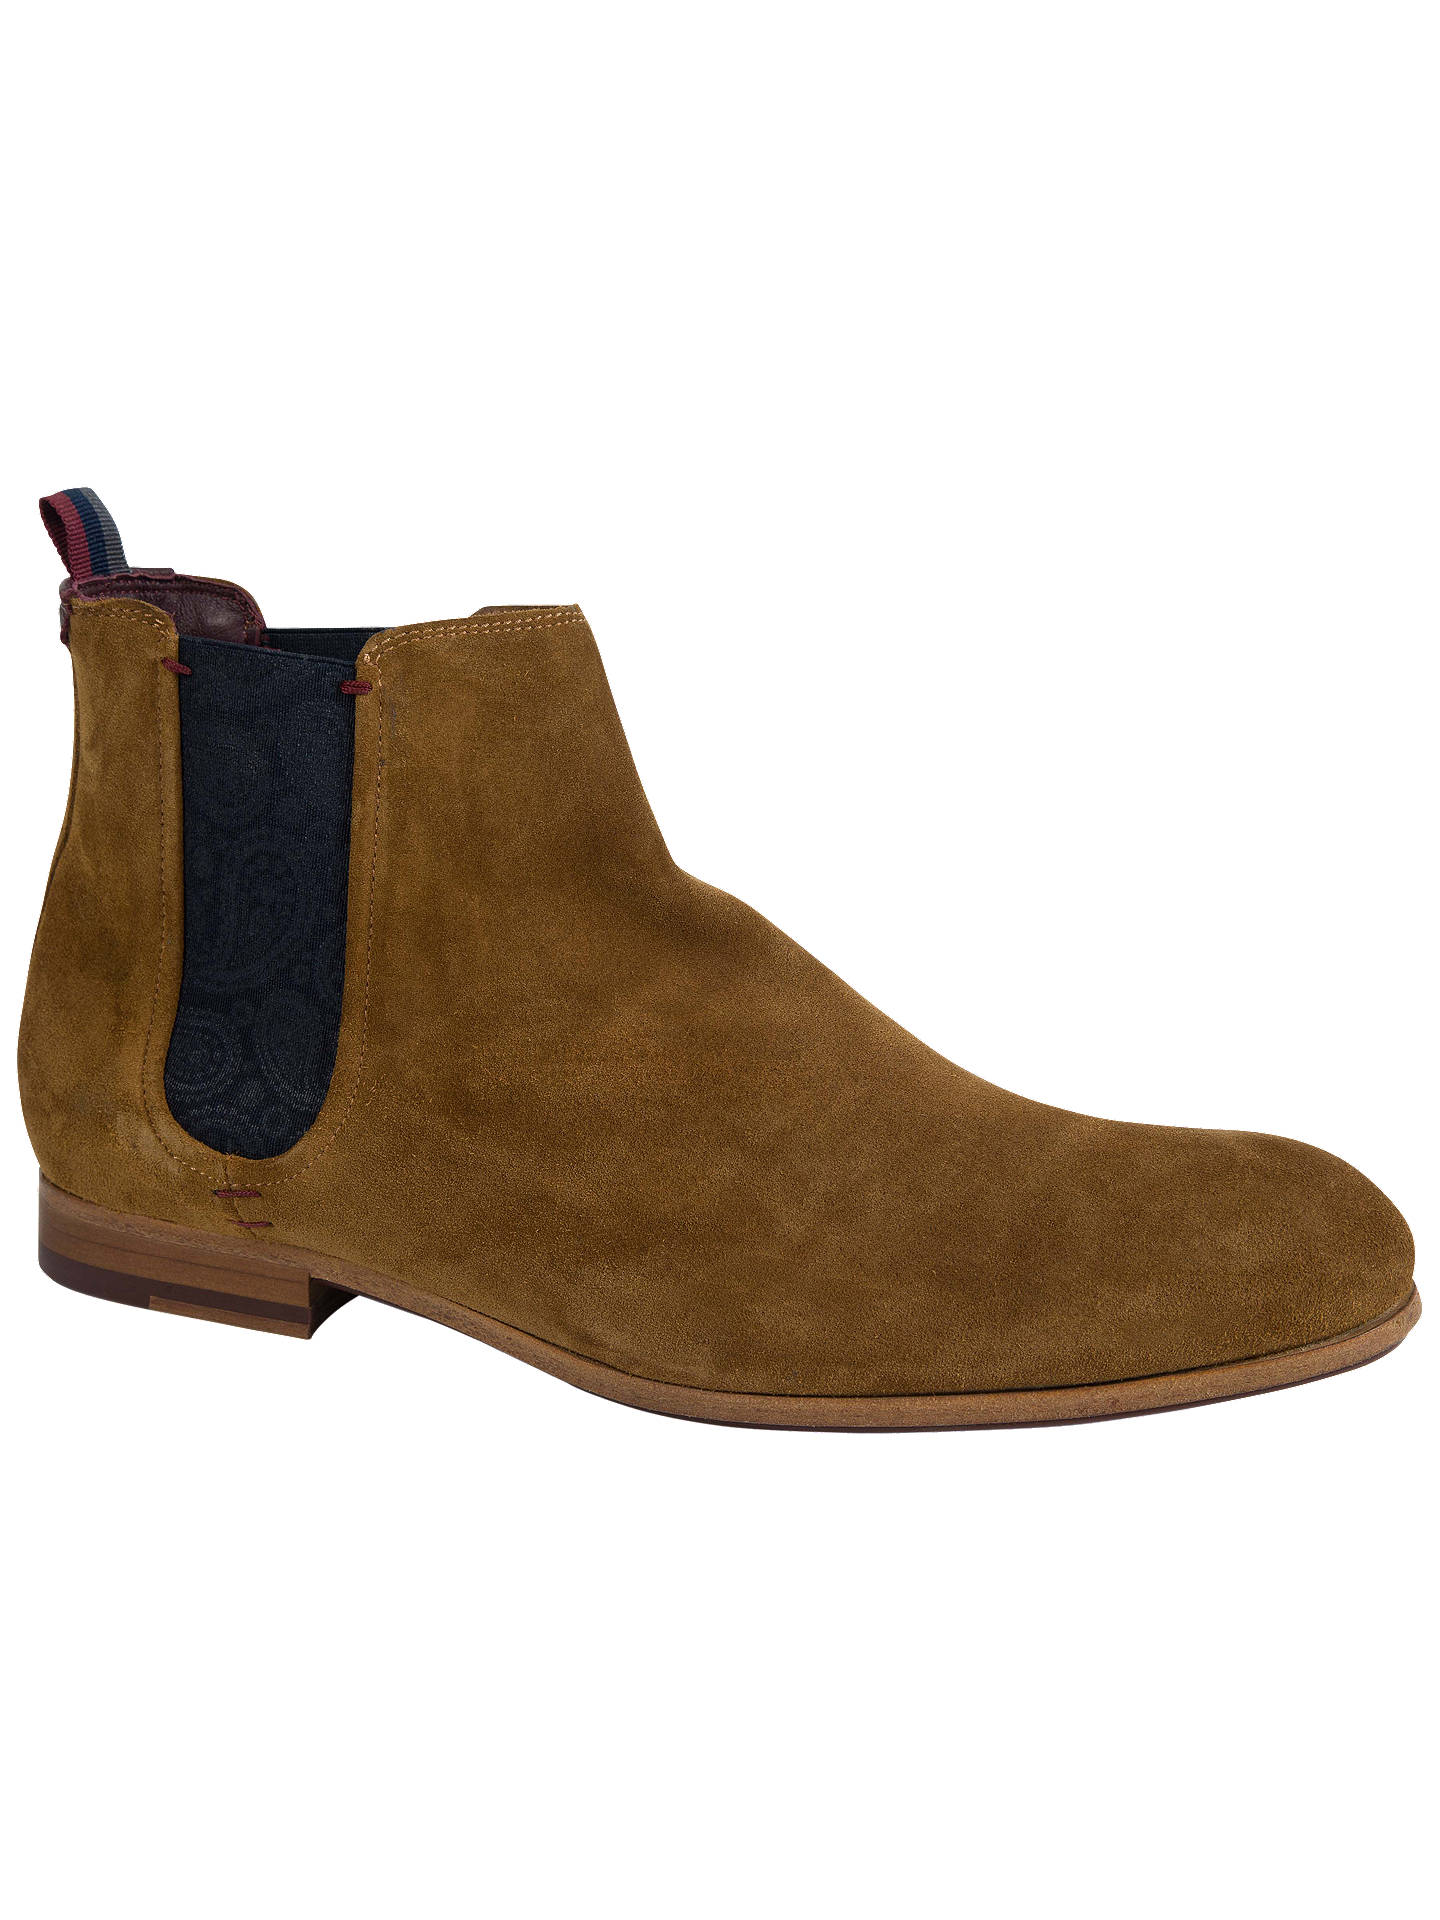 Buy Ted Baker Saldor Chelsea Boots, Brown, 12 Online at johnlewis.com